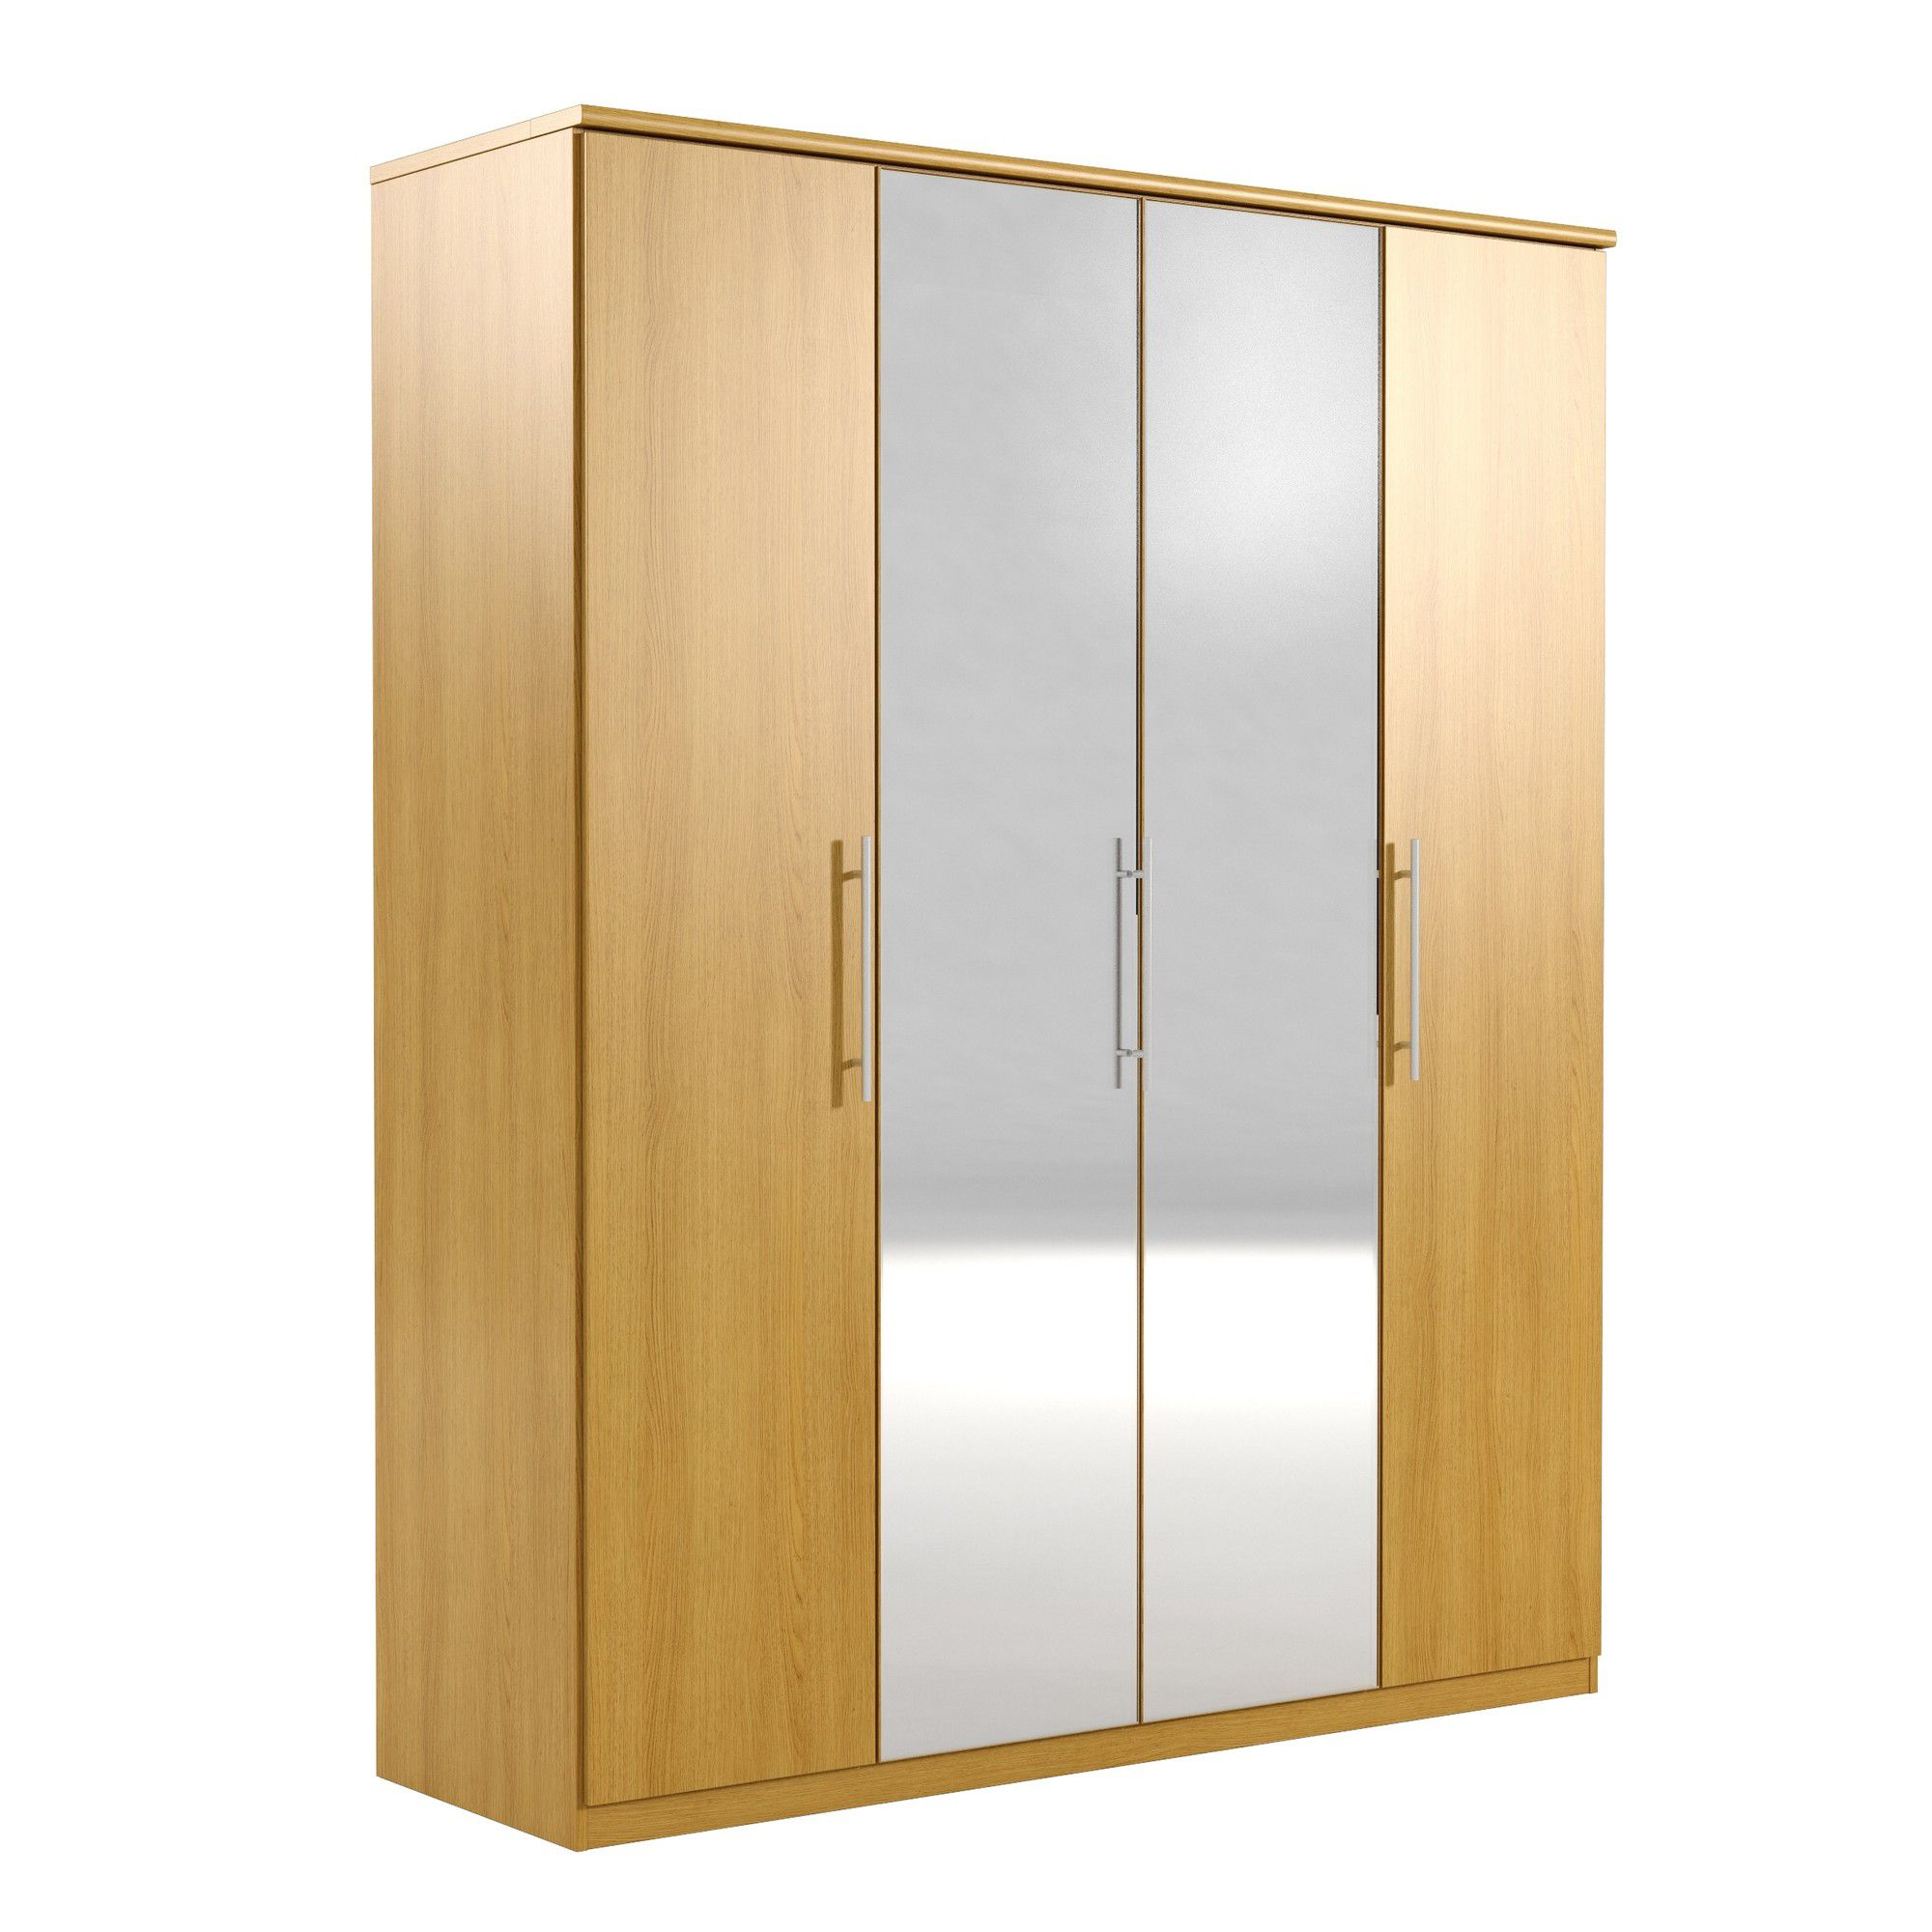 Urbane Designs Prague 4 Door Wardrobe - Oak at Tesco Direct